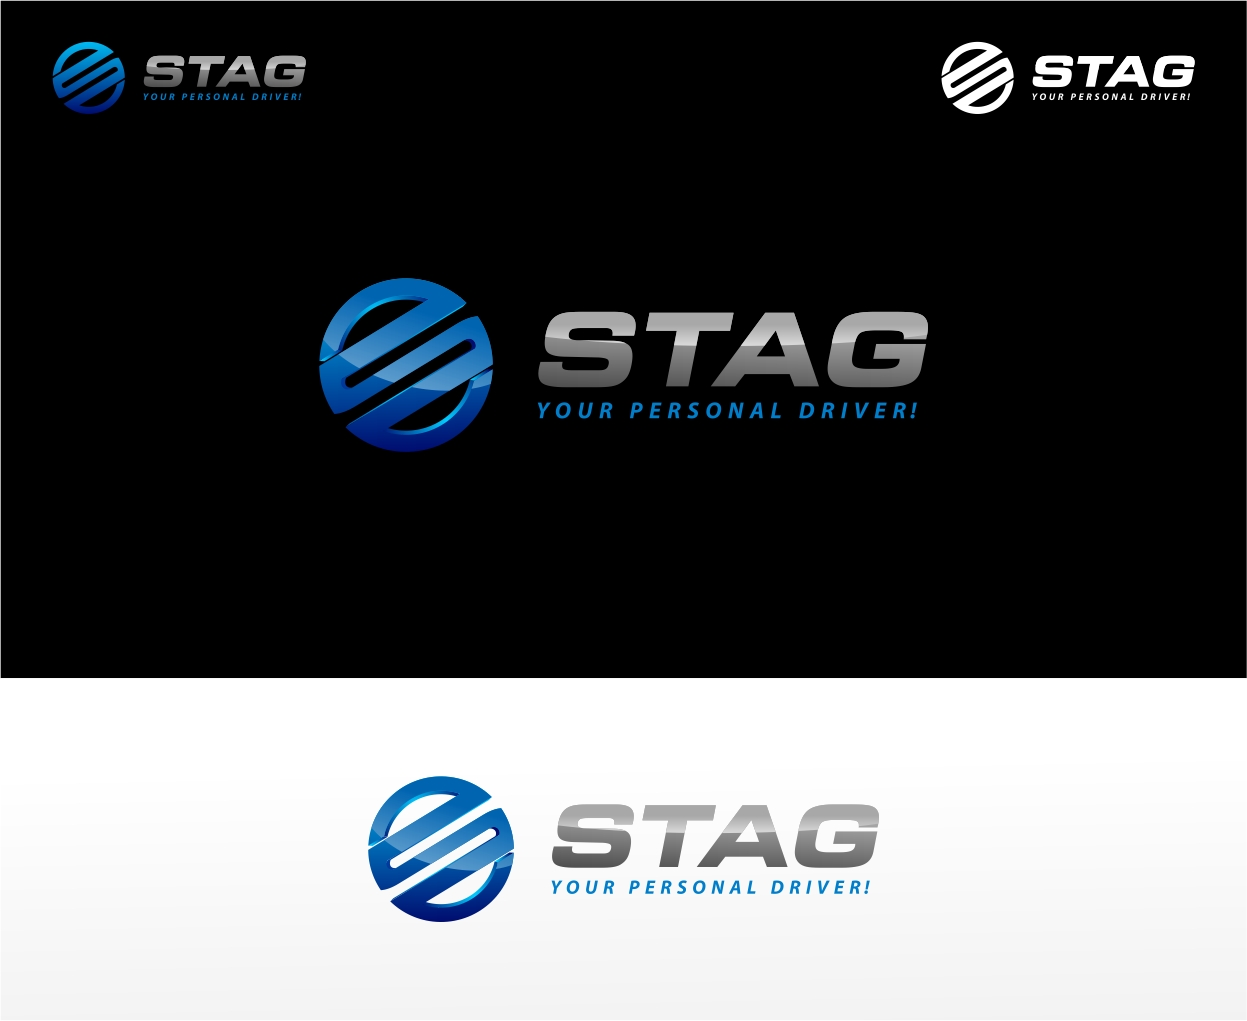 Logo Design by haidu - Entry No. 73 in the Logo Design Contest Unique Logo Design Wanted for Stag.